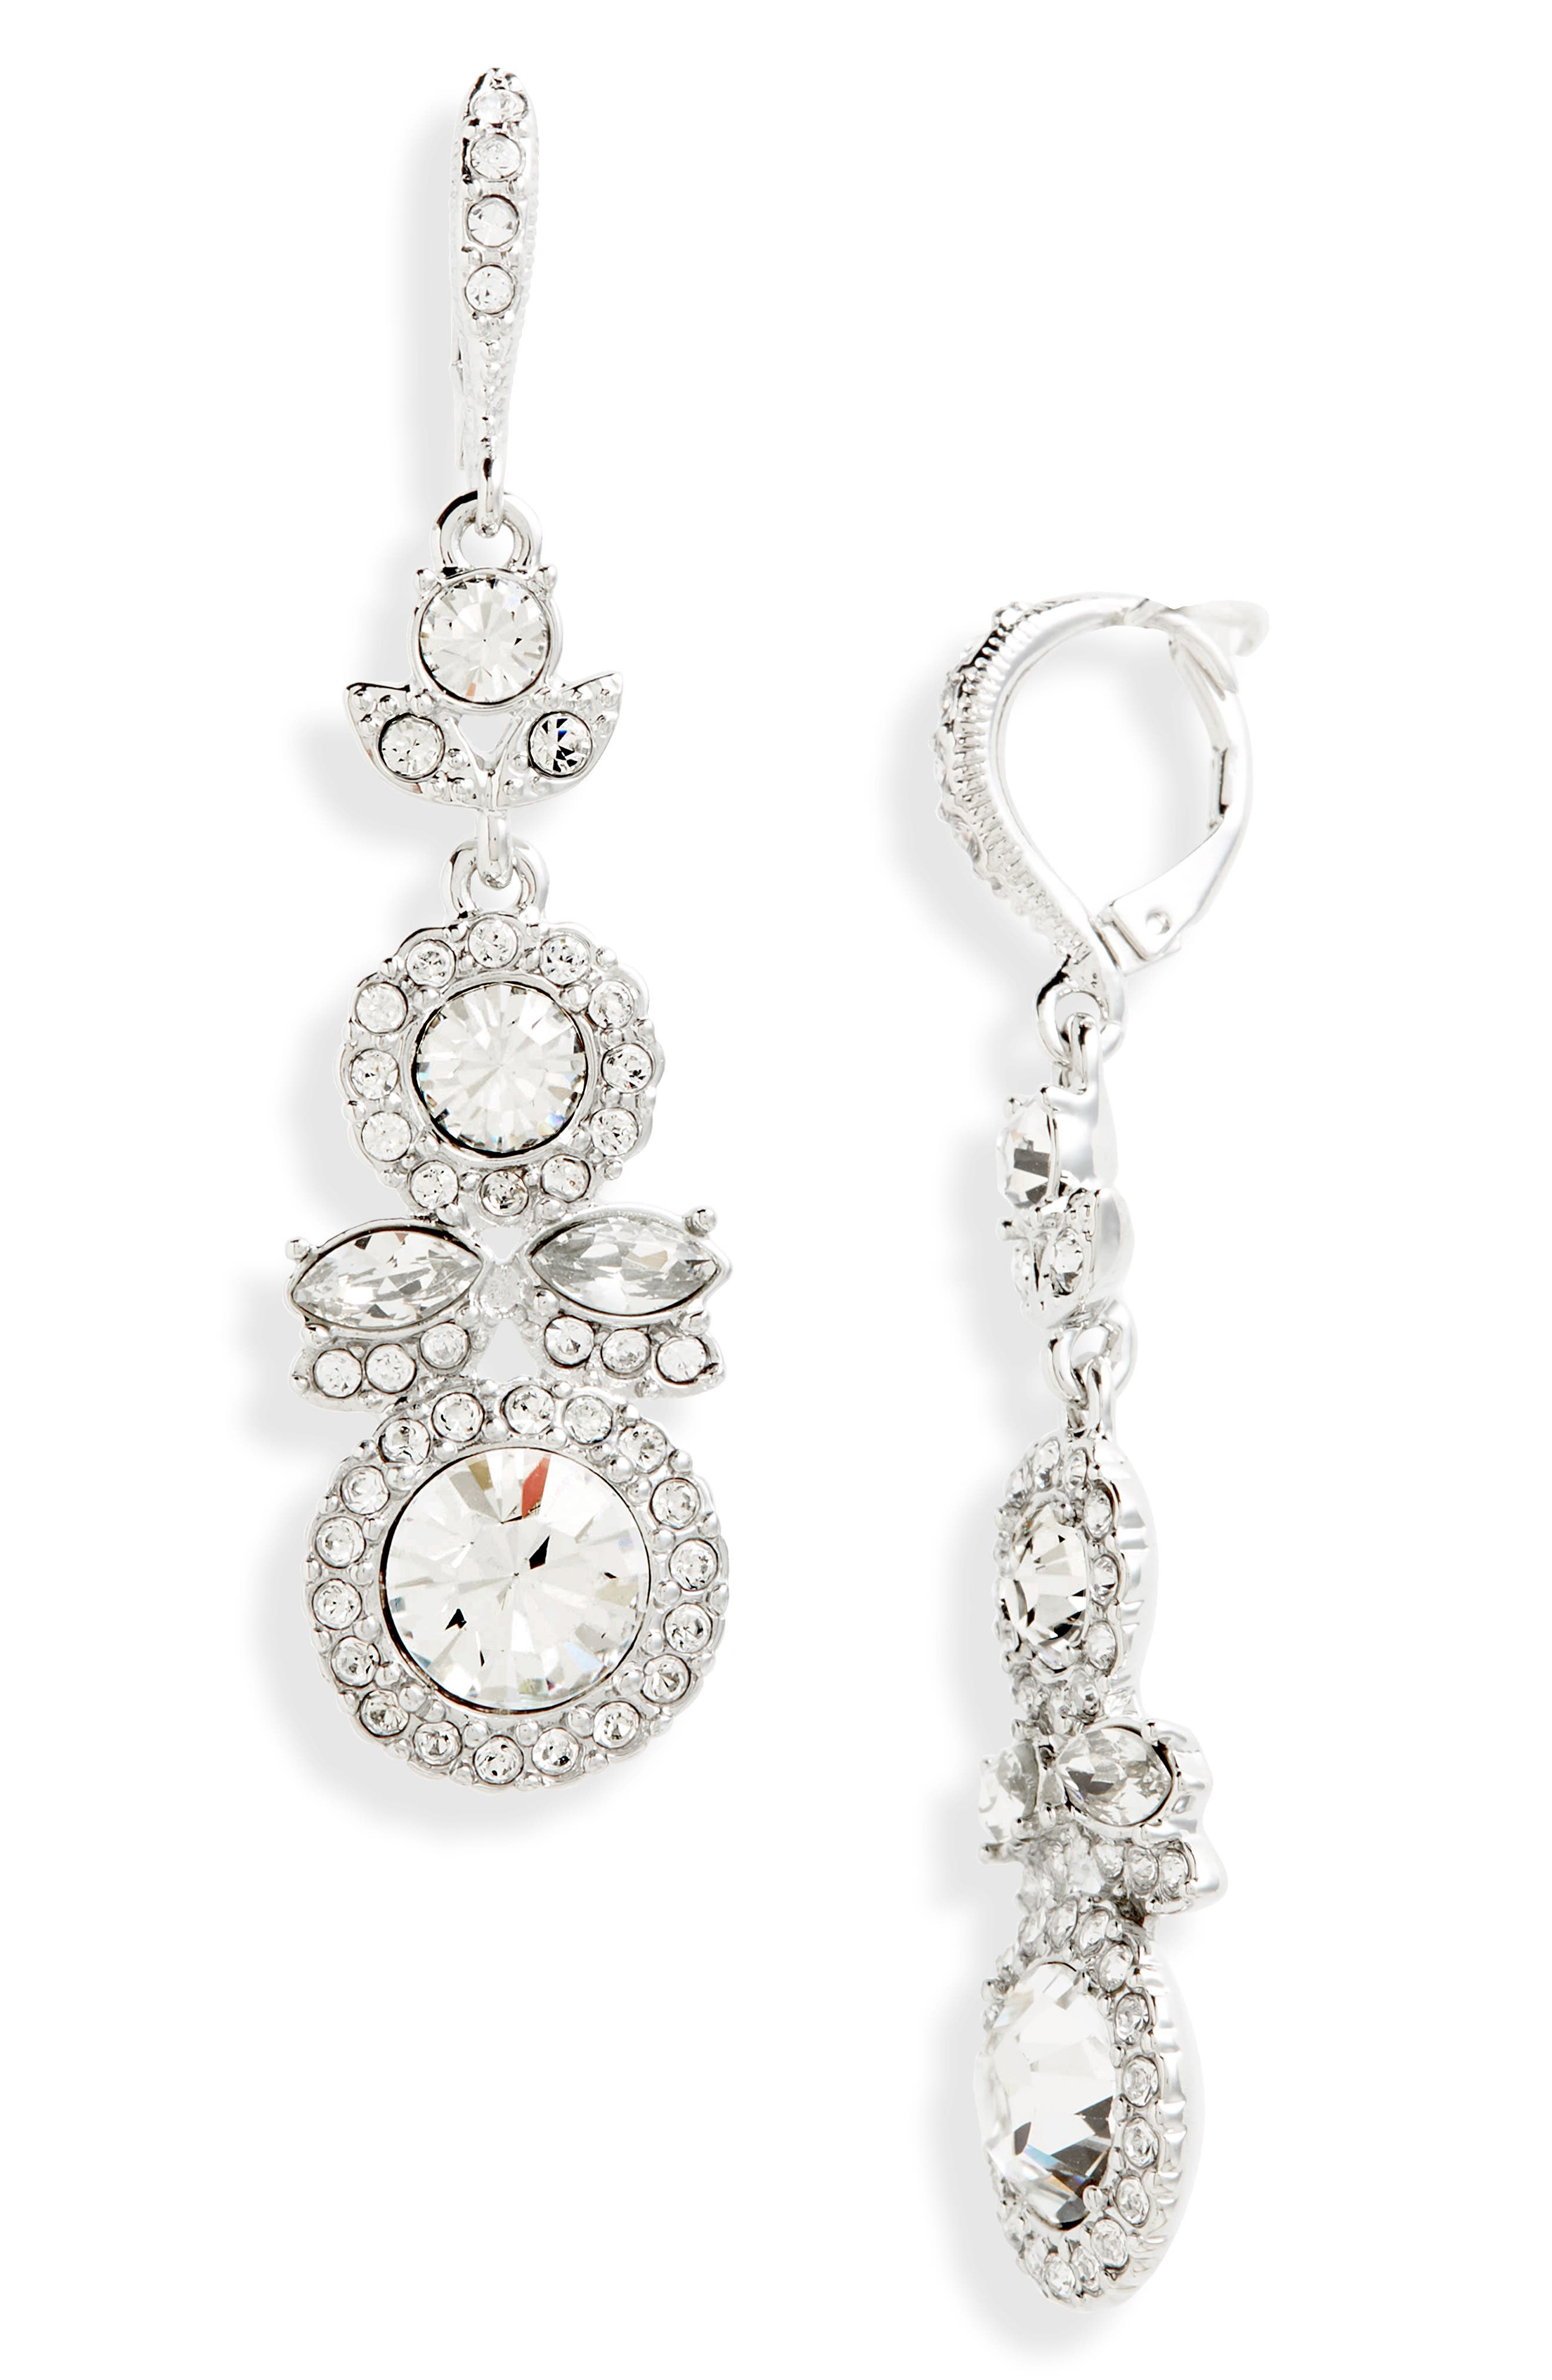 Crystal Drop Earrings,                             Main thumbnail 1, color,                             CRYSTAL/ SILVER